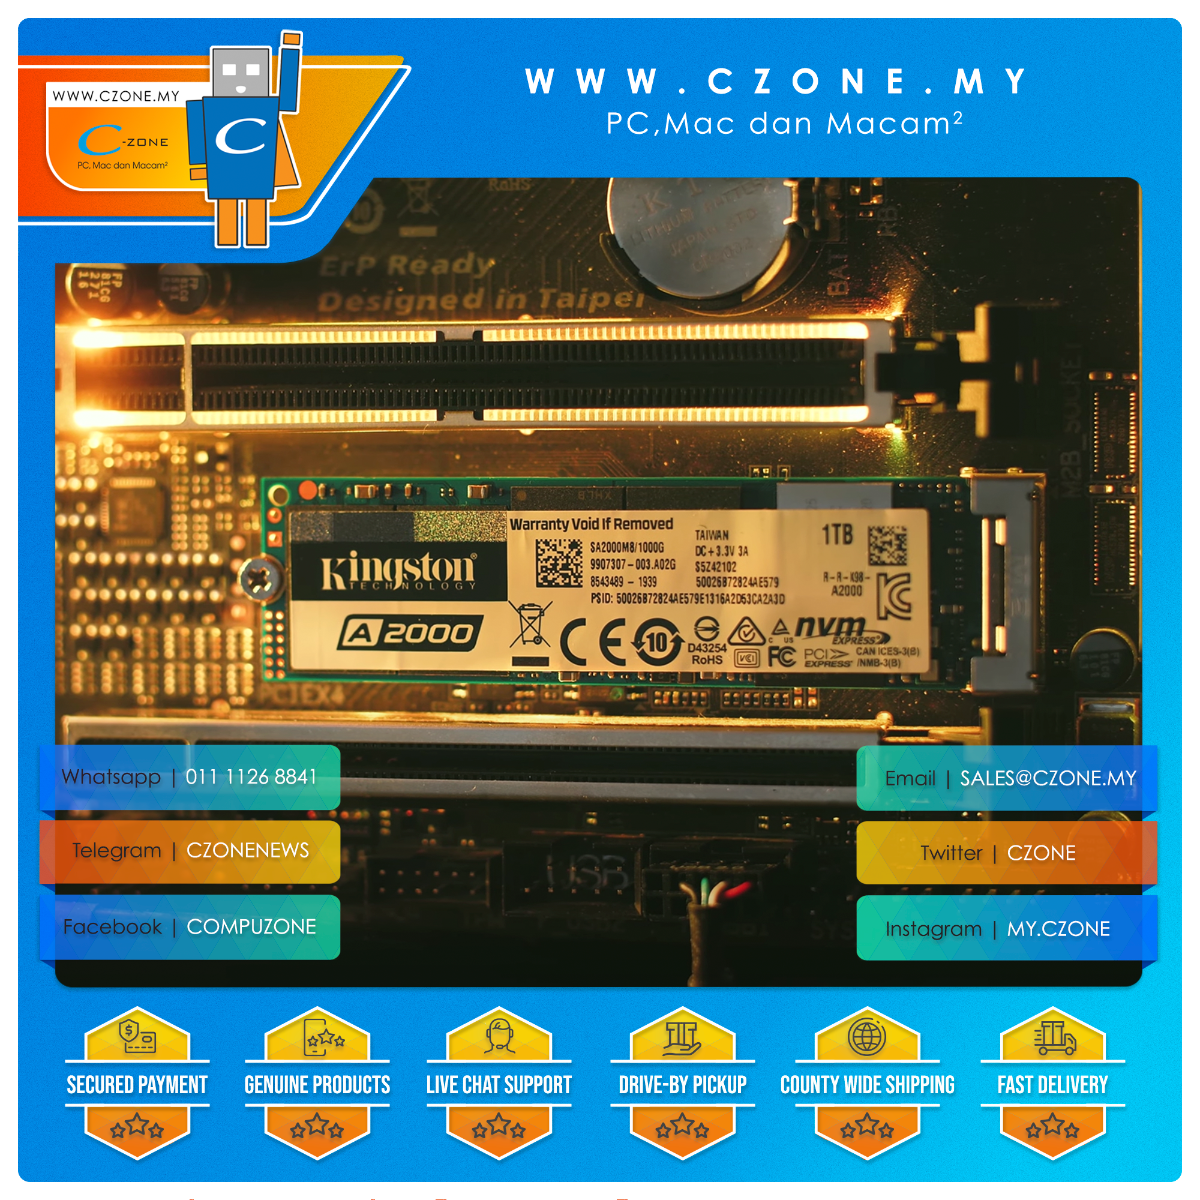 https://czone.my/czone/computer-components/storage-devices/ssd-solid-state-drives.html?brand=5680